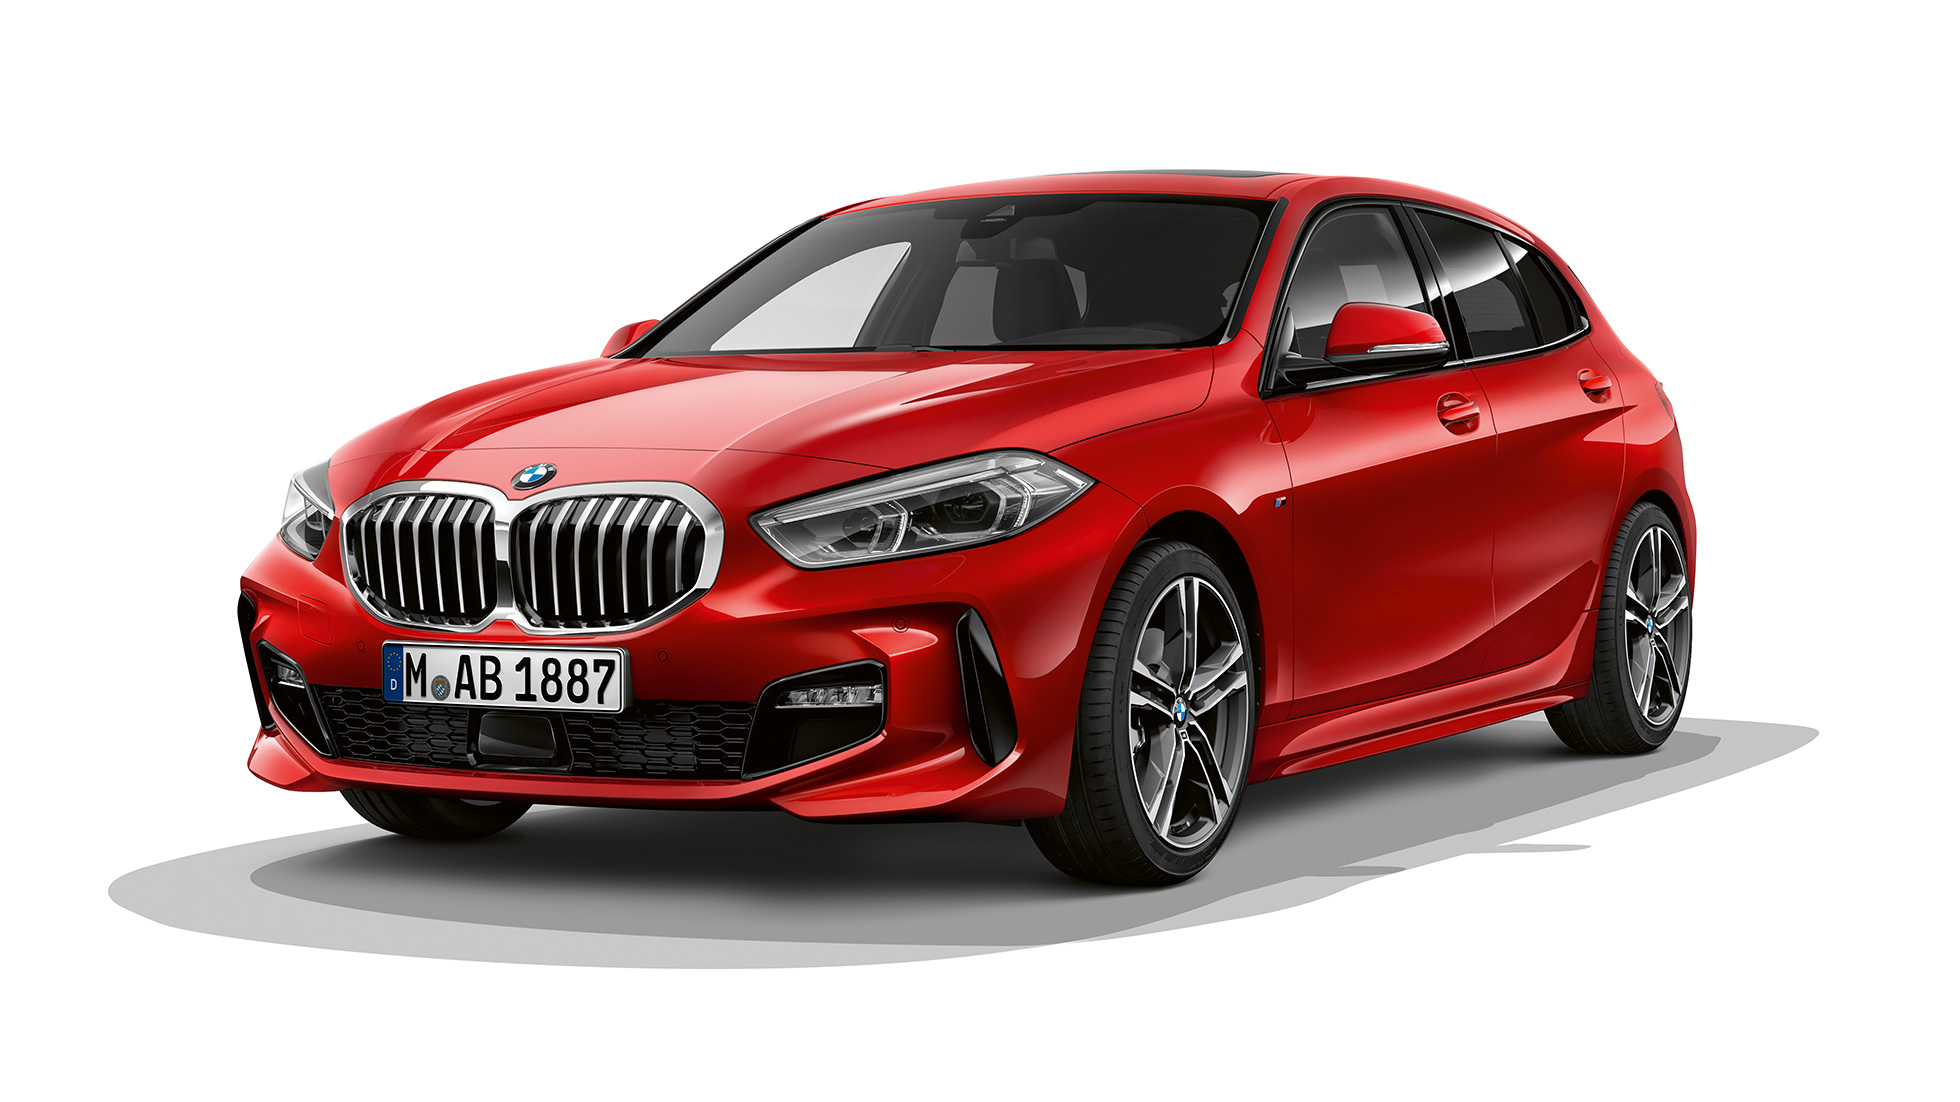 Bmw 1 Series 5 Door Models Engines And Technical Data